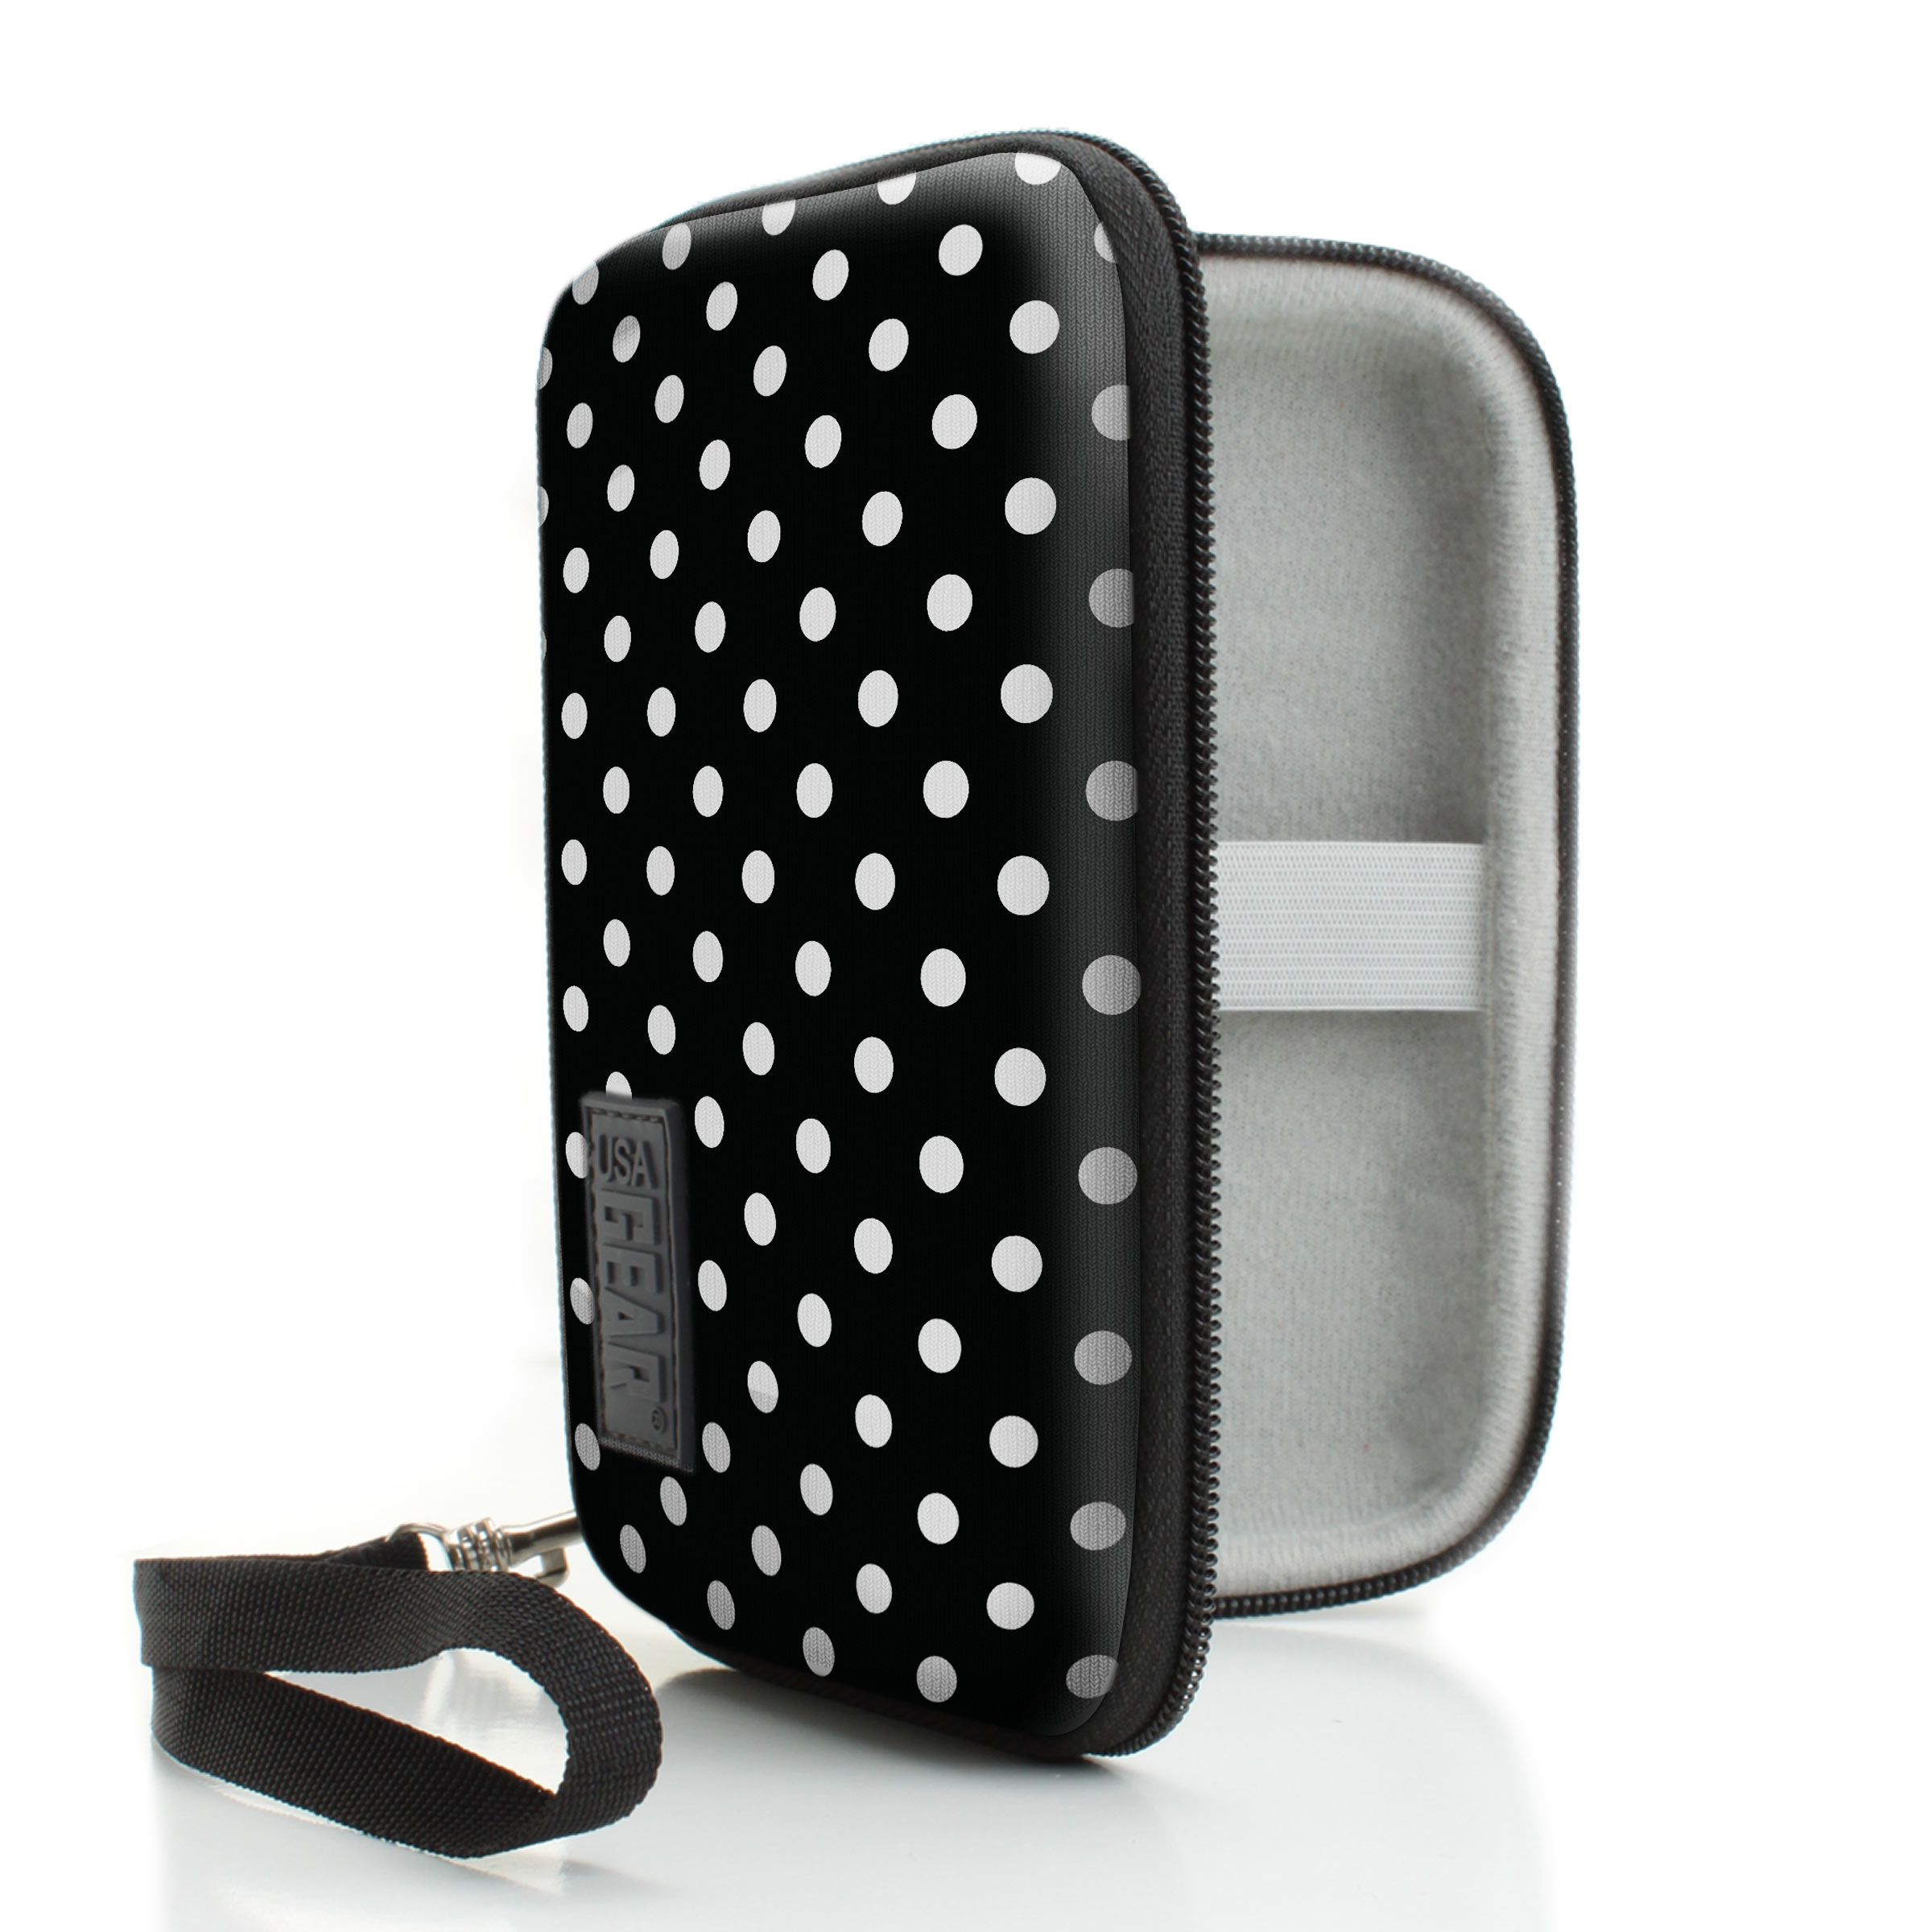 Protective Hard Shell Digital Voice Recorder Slim Case by USA Gear - Works With Sony ICD-UX533BLK / ICDTX50 , Olympus DP-201 , Dennov VR-BK8 and Many More Compact Voice Recorders - Polka Dot